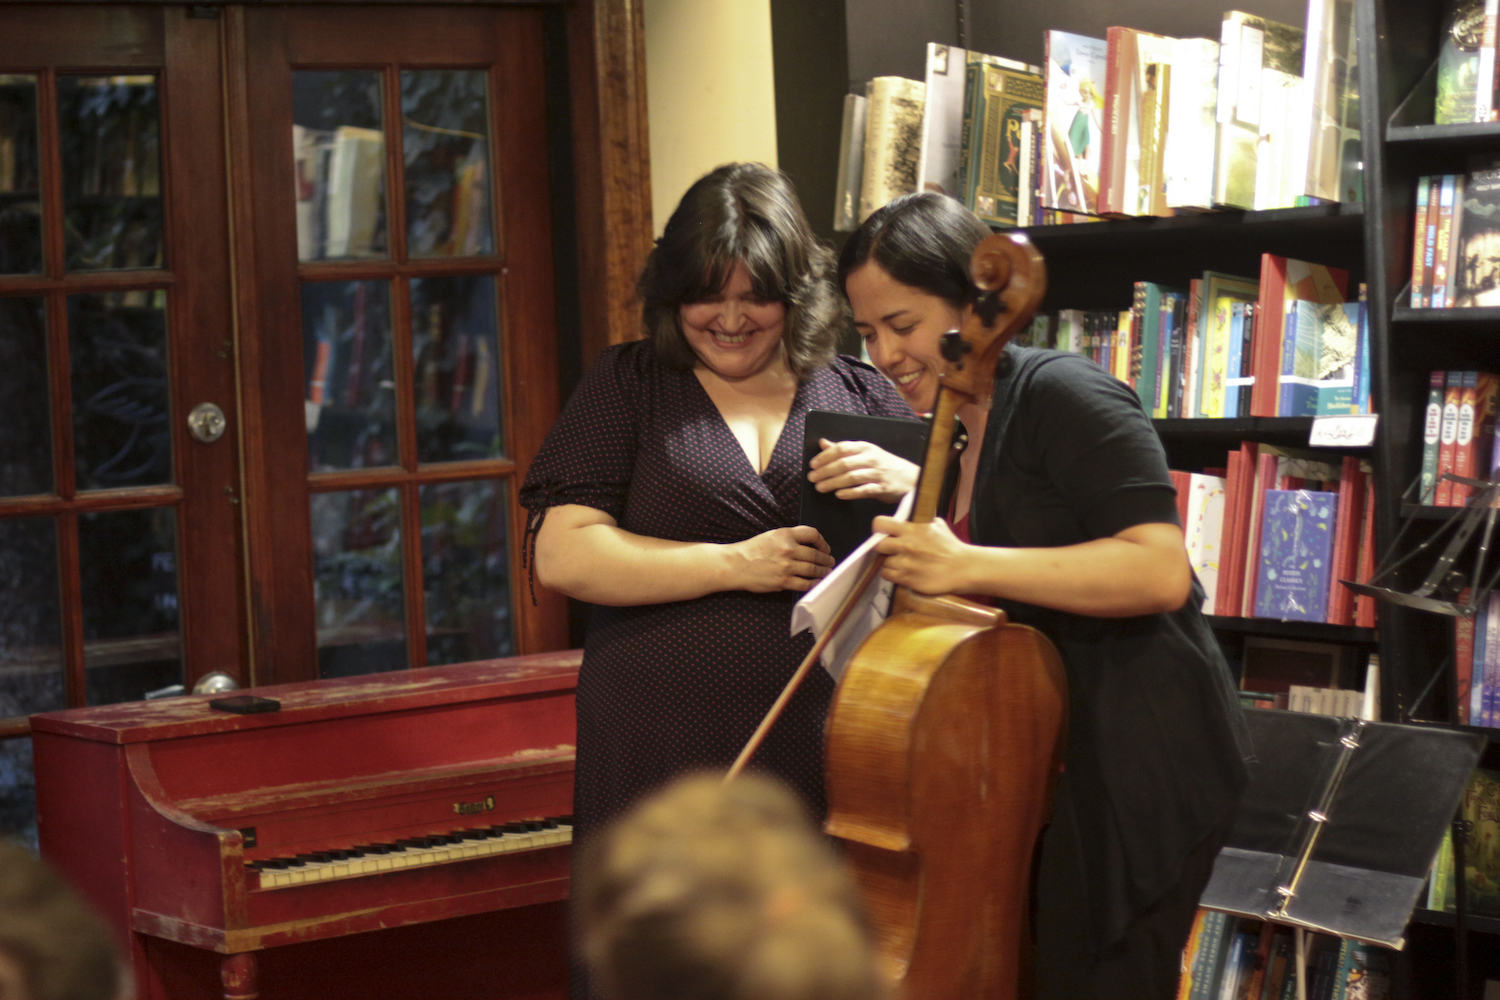 Luthien Brackett (right) and Hannah Collins (left) conclude a pre-event rehearsal.